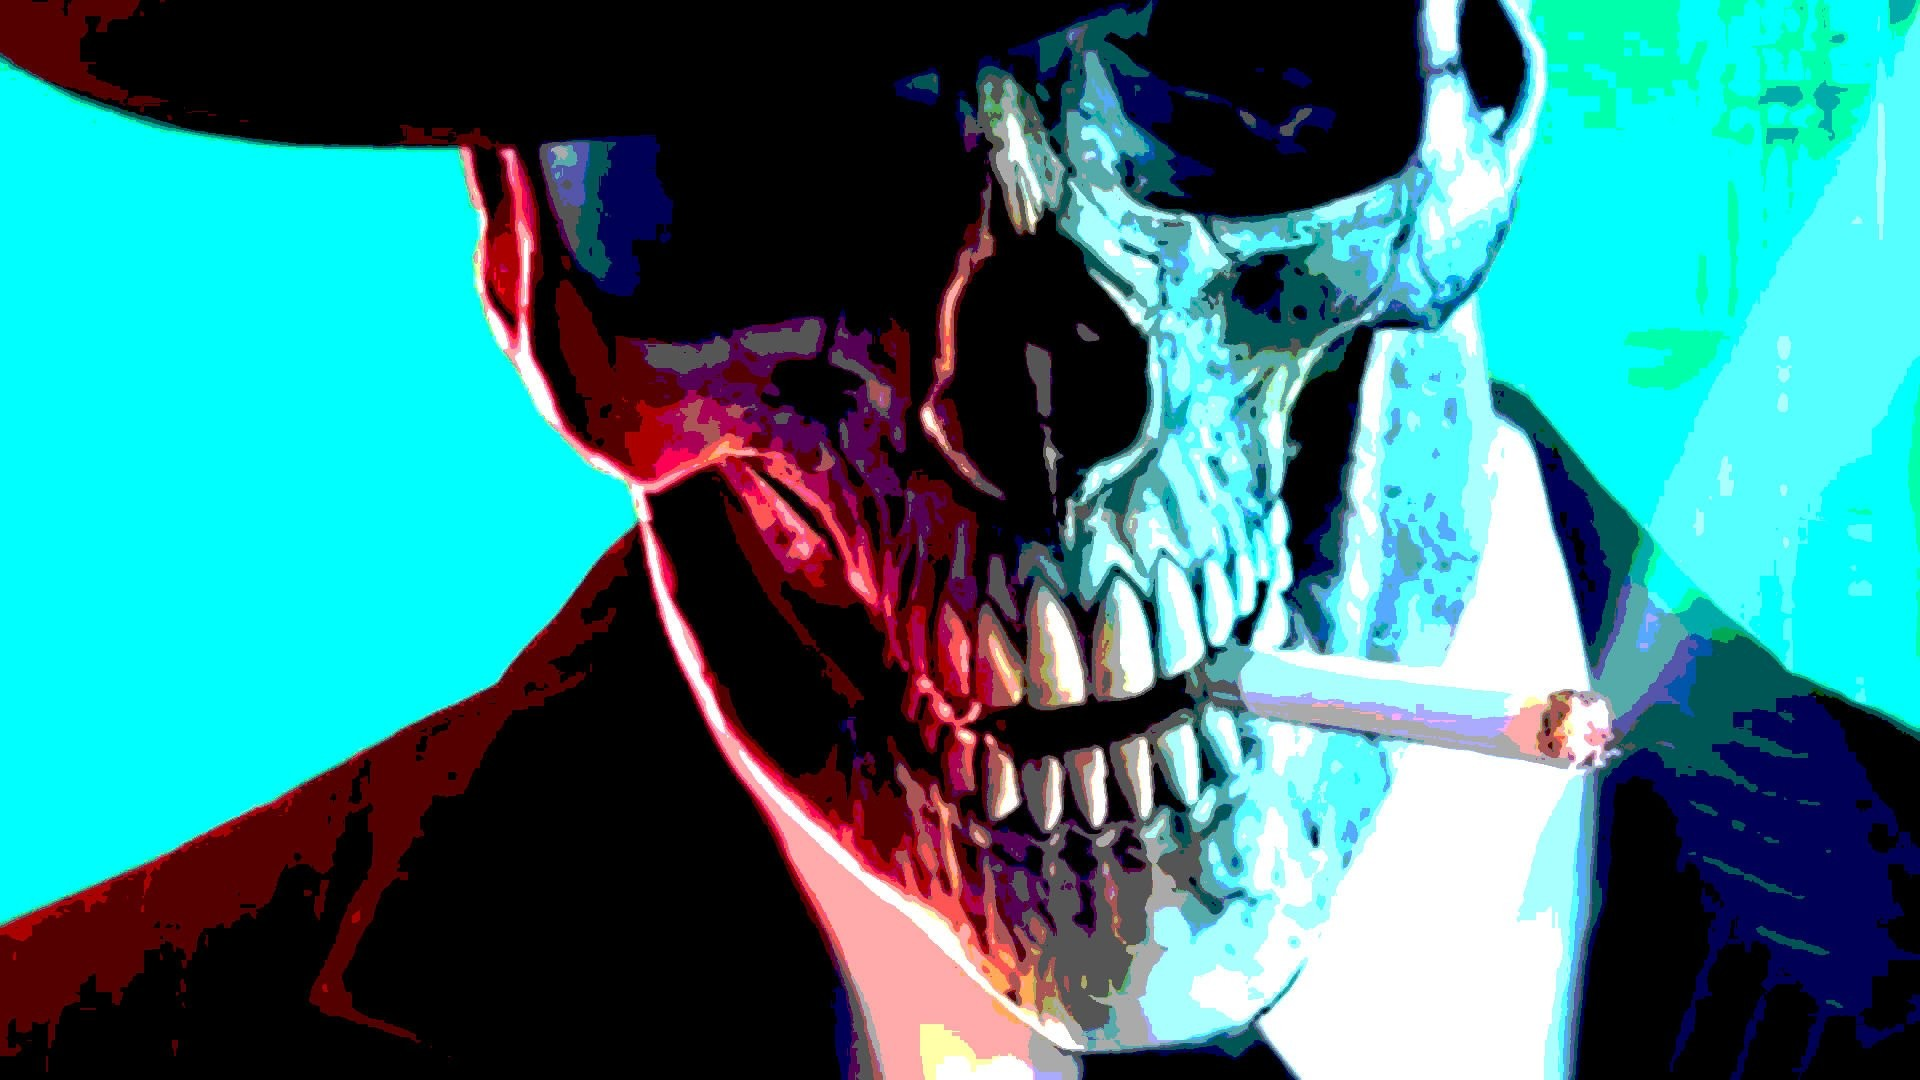 Best 10+ Hd skull wallpapers ideas on Pinterest | Punisher logo, The  punisher and Punisher